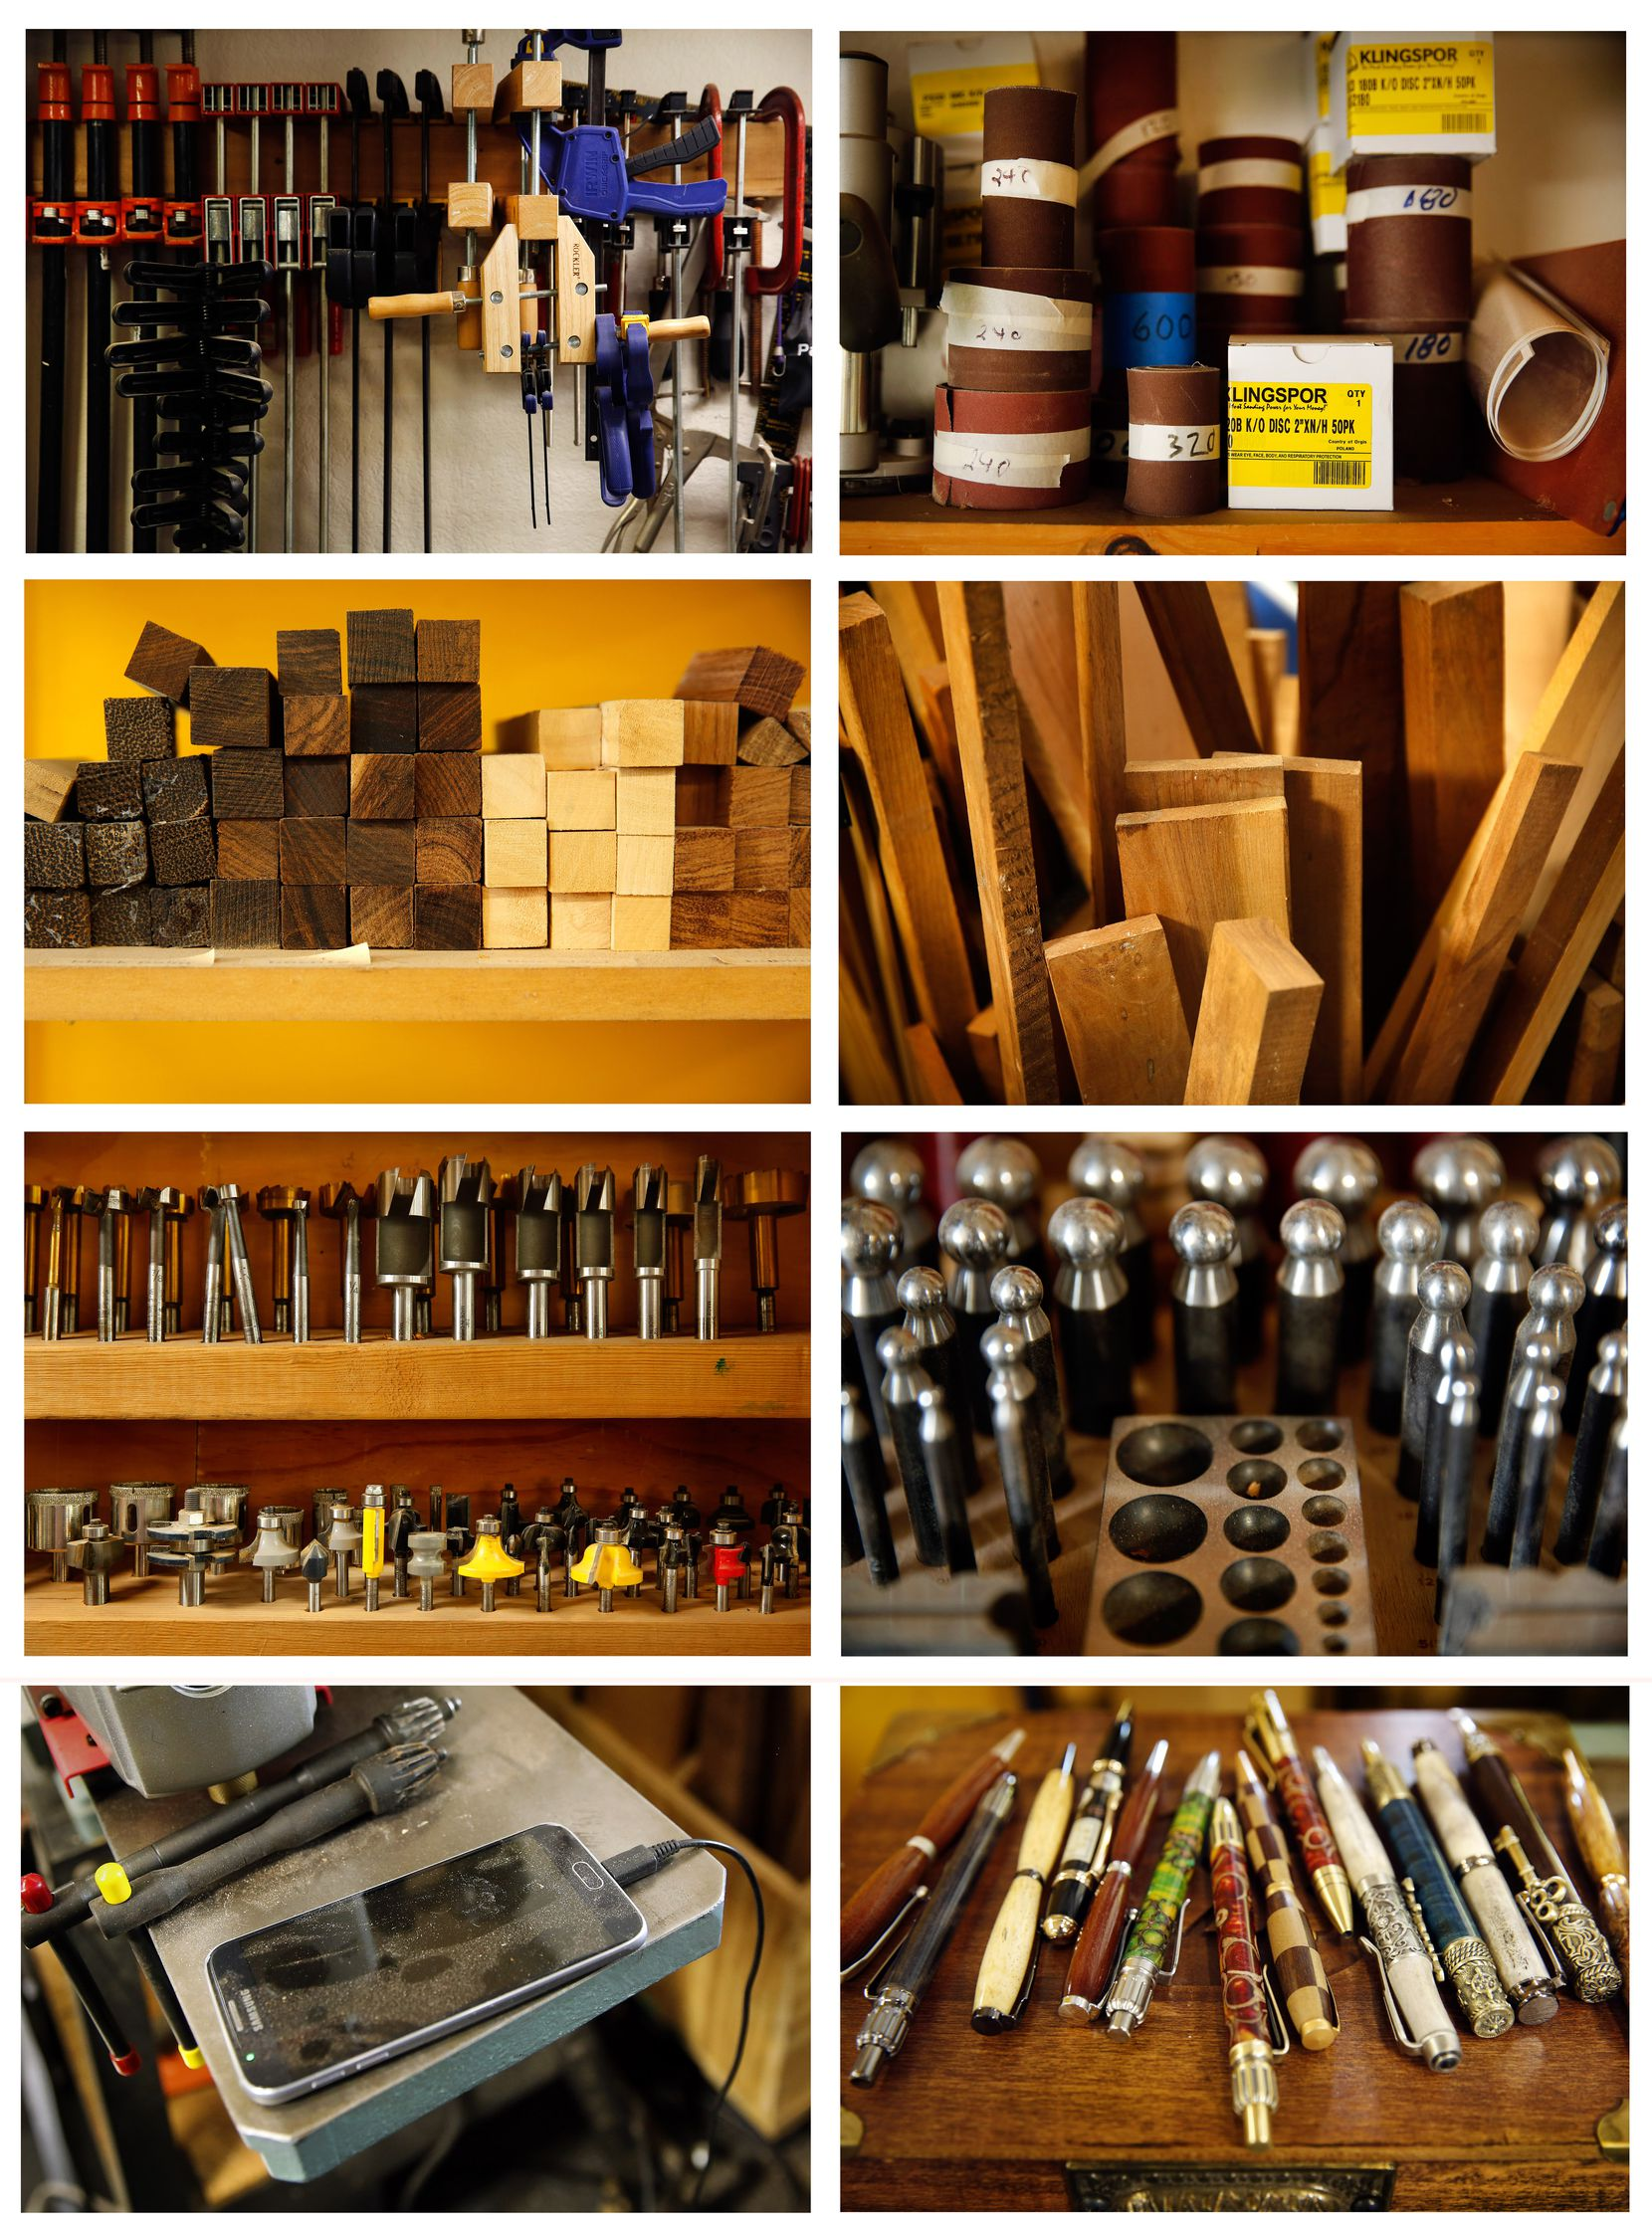 Pieces of Scott Rowe's woodworking shop are pictured clockwise from top left, at their southwest Fort Worth home, Thursday, May 14, 2020. A vast assortment of clamps; different grit numbered sandpapers; pieces of wood stacked in a bin; dapping punches and block used to make jewelry; assortment of handmade pens, some made from antlers; one of Scott's smartphones still charging in the shop; an assortment of routing bits; and short blocks of wood used to make wooden pens.  Scott suddenly had heart failure and his wife Lisa Rowe couldn't see him after the paramedics took him away. He died shortly afterward. Everything in his shop is as neatly organized as it was before he died. (Tom Fox/The Dallas Morning News)